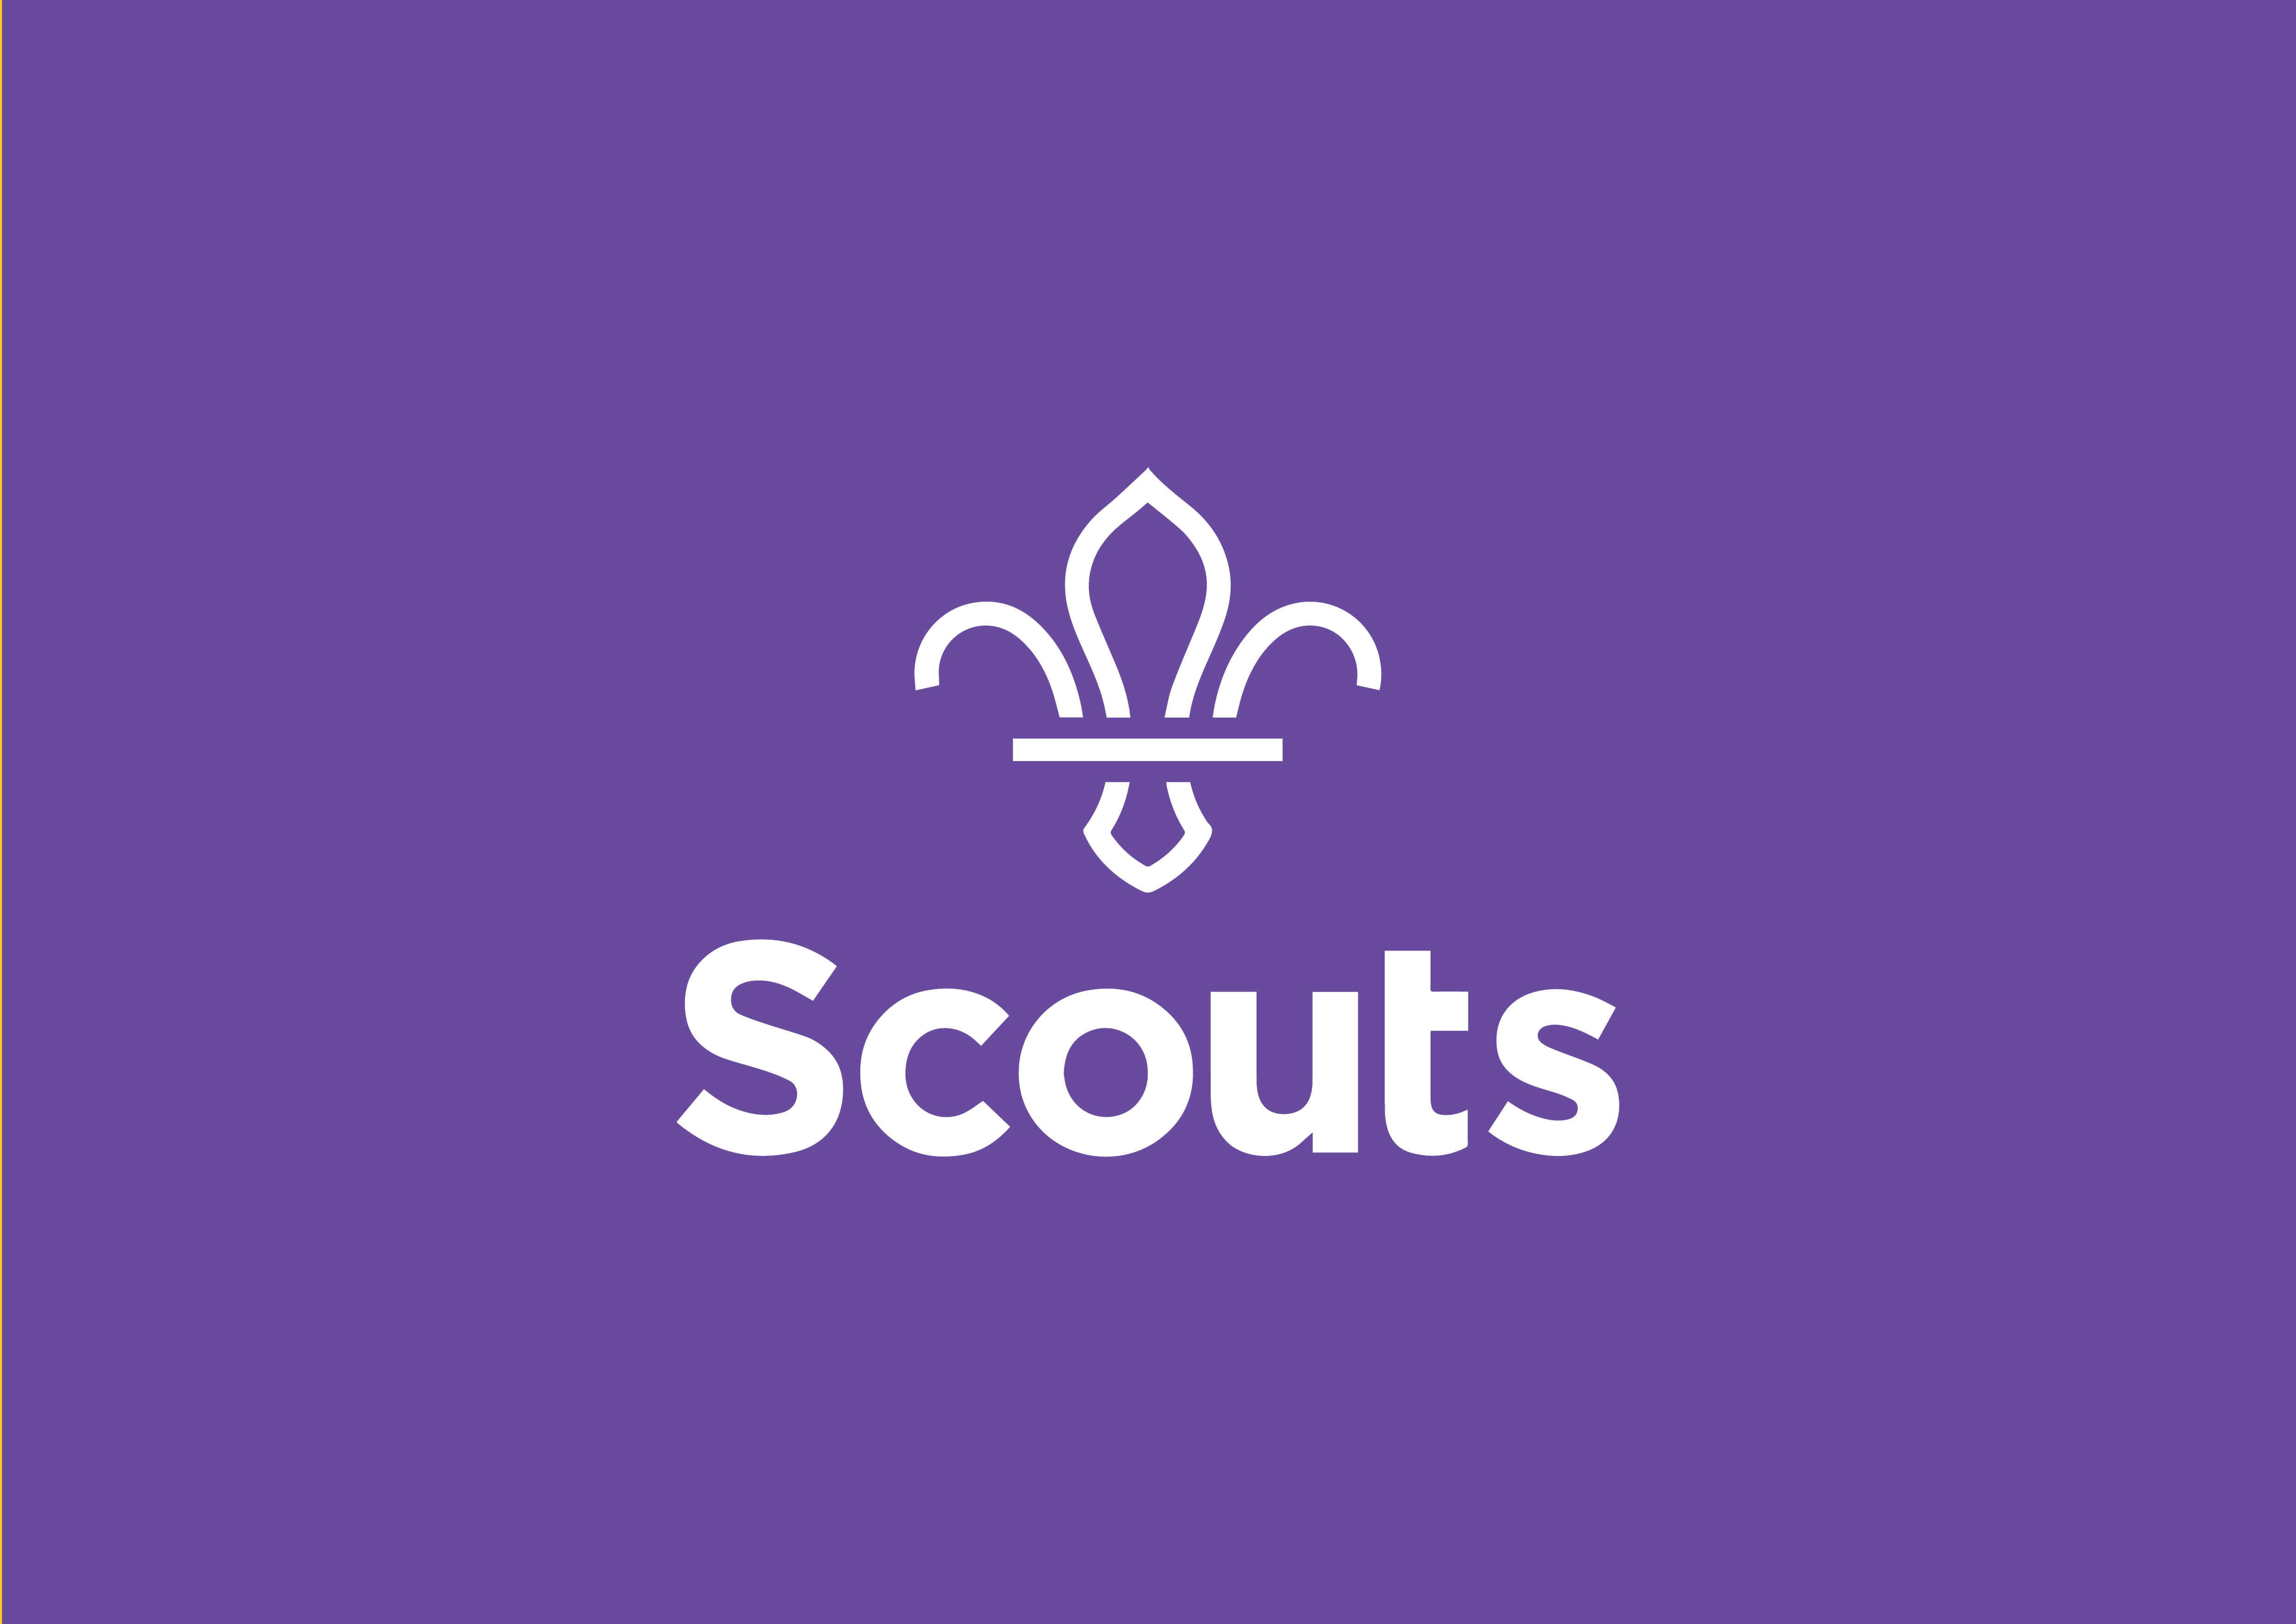 """In 2015 I was challenged with redesigning the Scout Association's quarterly magazine through my role at Immediate Media Branded Content. I felt that the Magazine should become a more crafted, valuable, and keepable document, empowering the adult audience to take pride in their involvement in their movement. I created a bespoke drawn masthead giving the magazine a distinct identity which presented the new format in a bold and decisive manner with a nod to heritage. My art-direction always aimed to capture real scouting in the photography – looking to capture natural moments with a sense of narrative, whereas the illustration should express the joy of working with young people, but not be aimed at them. It was – in the words of one volunteer – """"properly grown-up"""". I also created the identity for sister magazine Make.Do.Share. – if Scouting was the adult volunteer magazine, then Make.Do.Share. was its unruly, creative younger sibling. Reader satisfaction levels have surged following the relaunch, and advertising revenues increased dramatically – up over 50% – now offsetting over 30% of the cost of producing the magazine."""